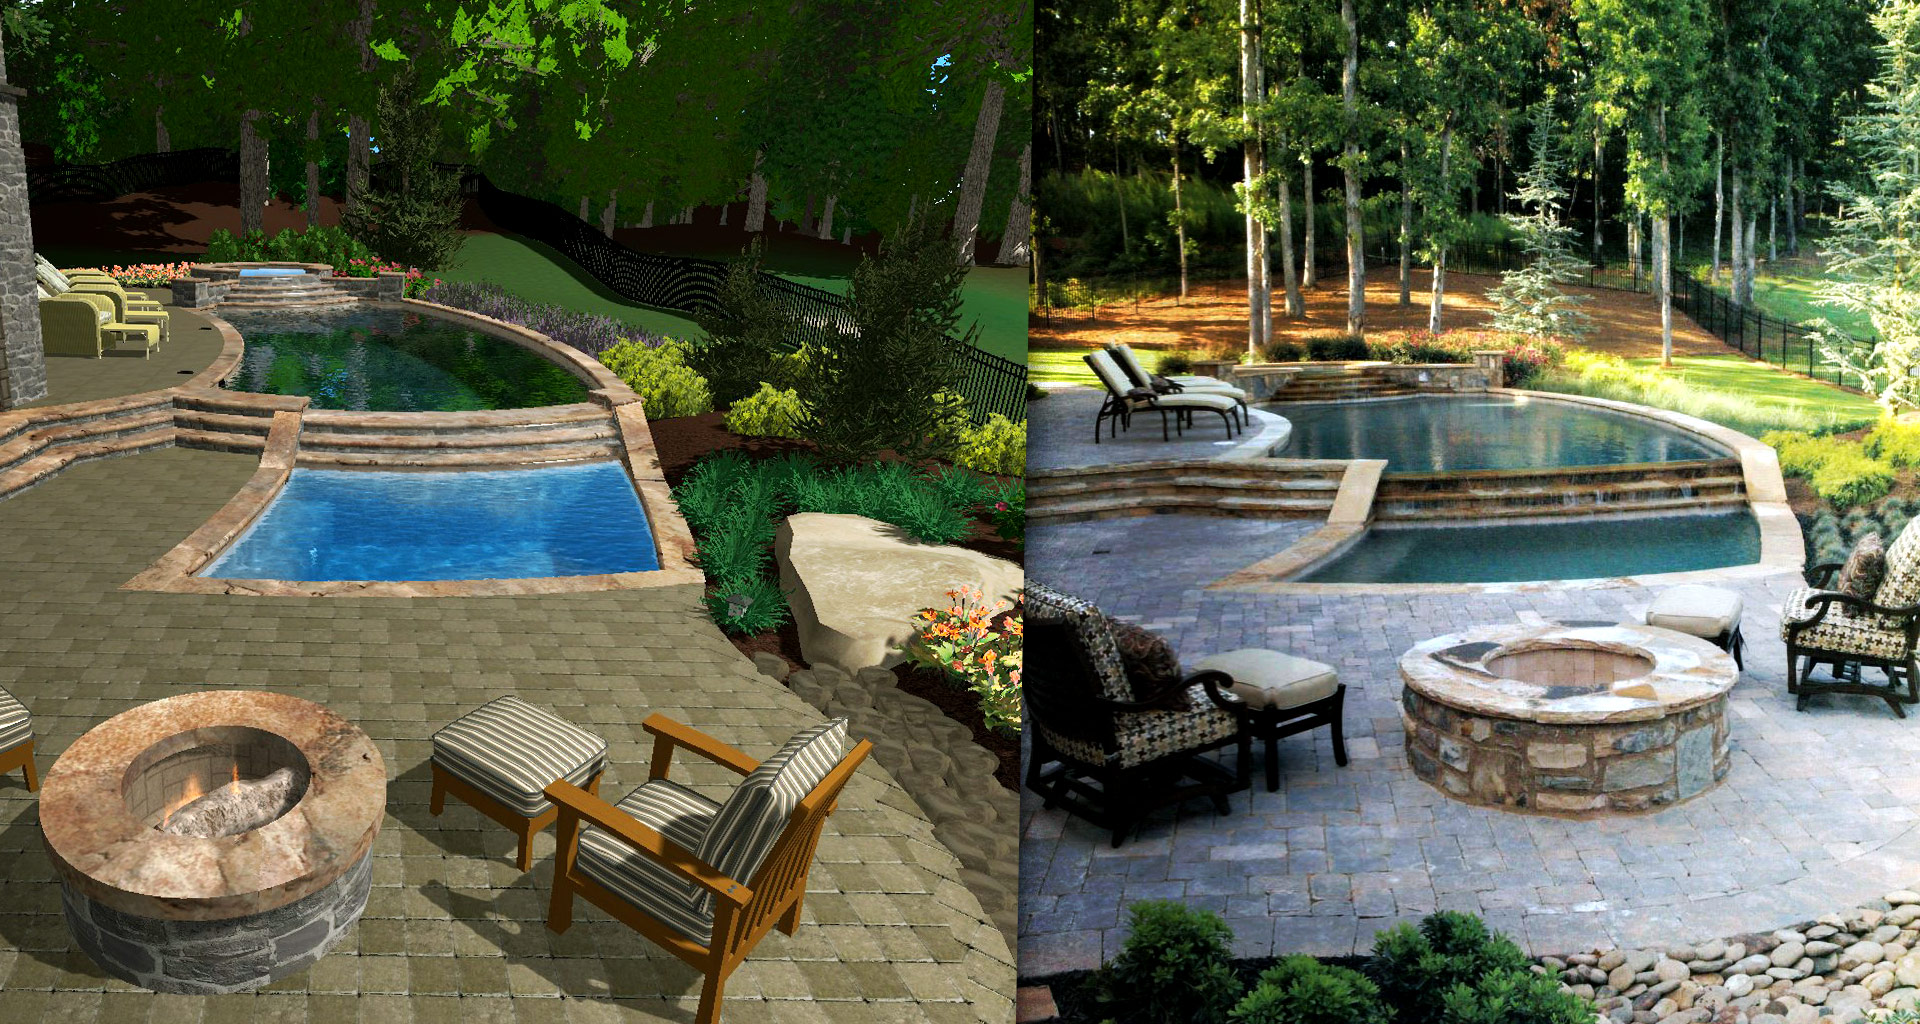 Focusing on Details - Pool Studio Rendering and Real Project Comparison